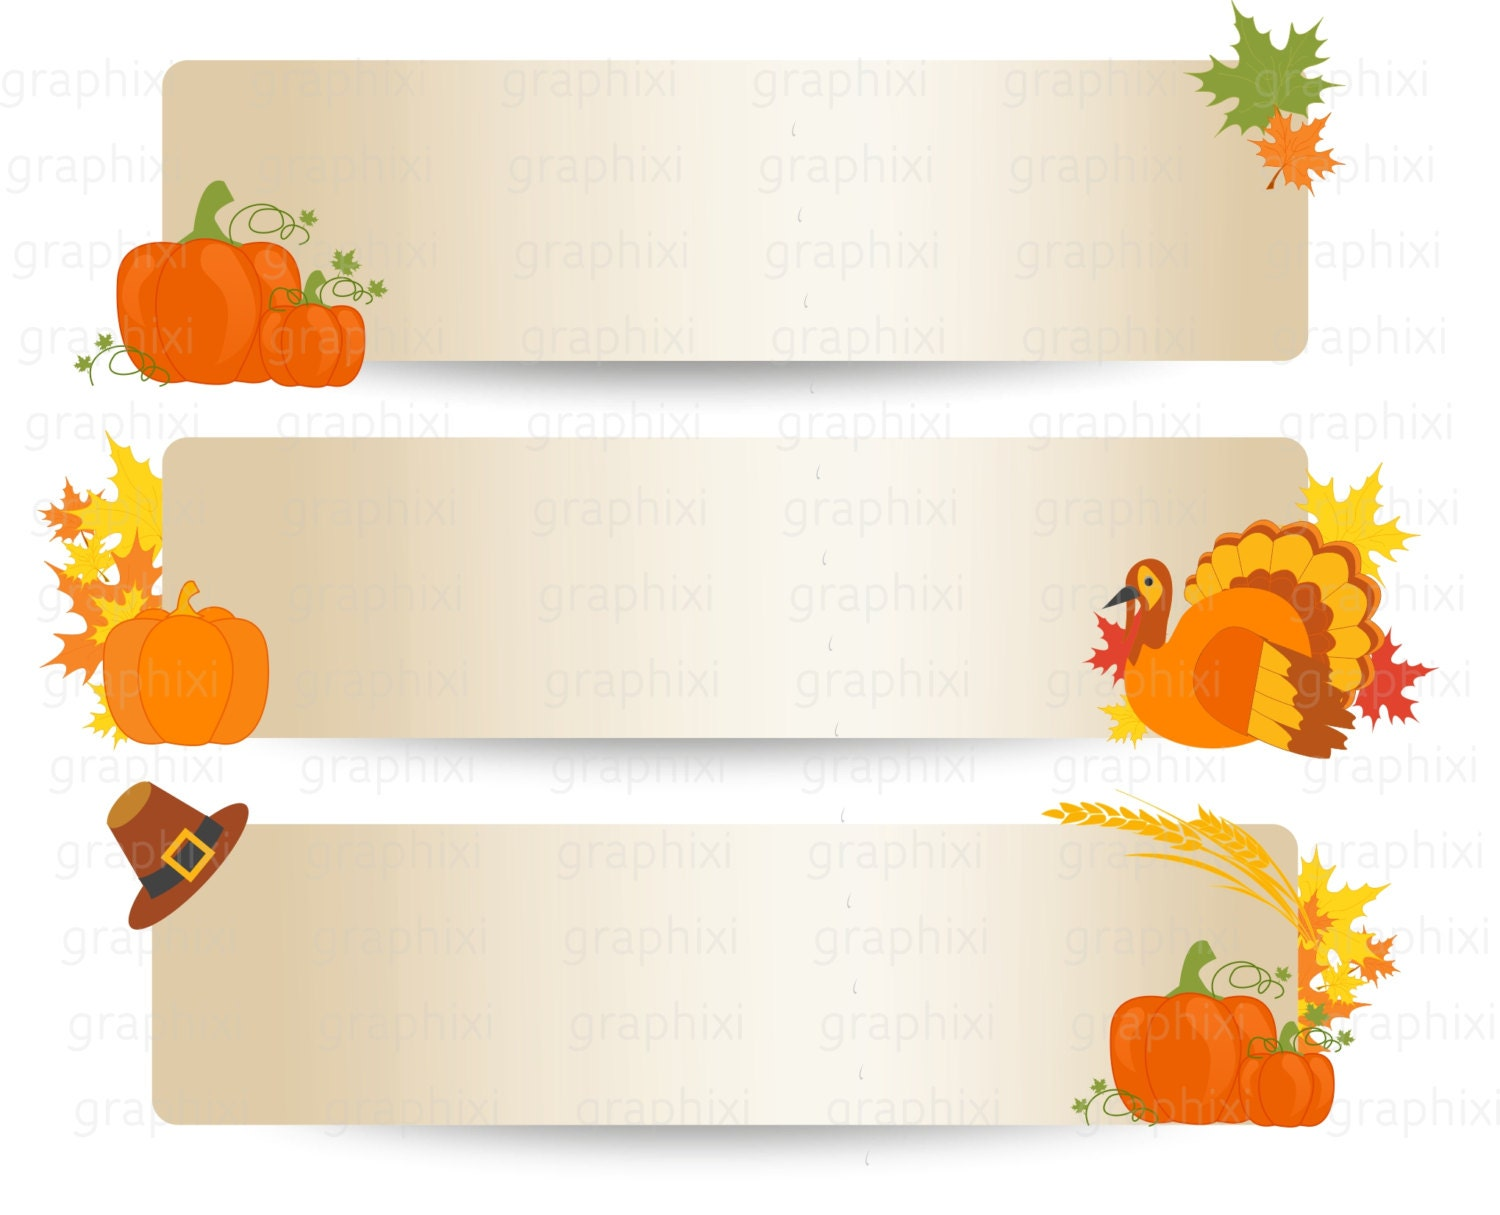 THANKSGIVING Banner Clipart commercial use personal use | Etsy